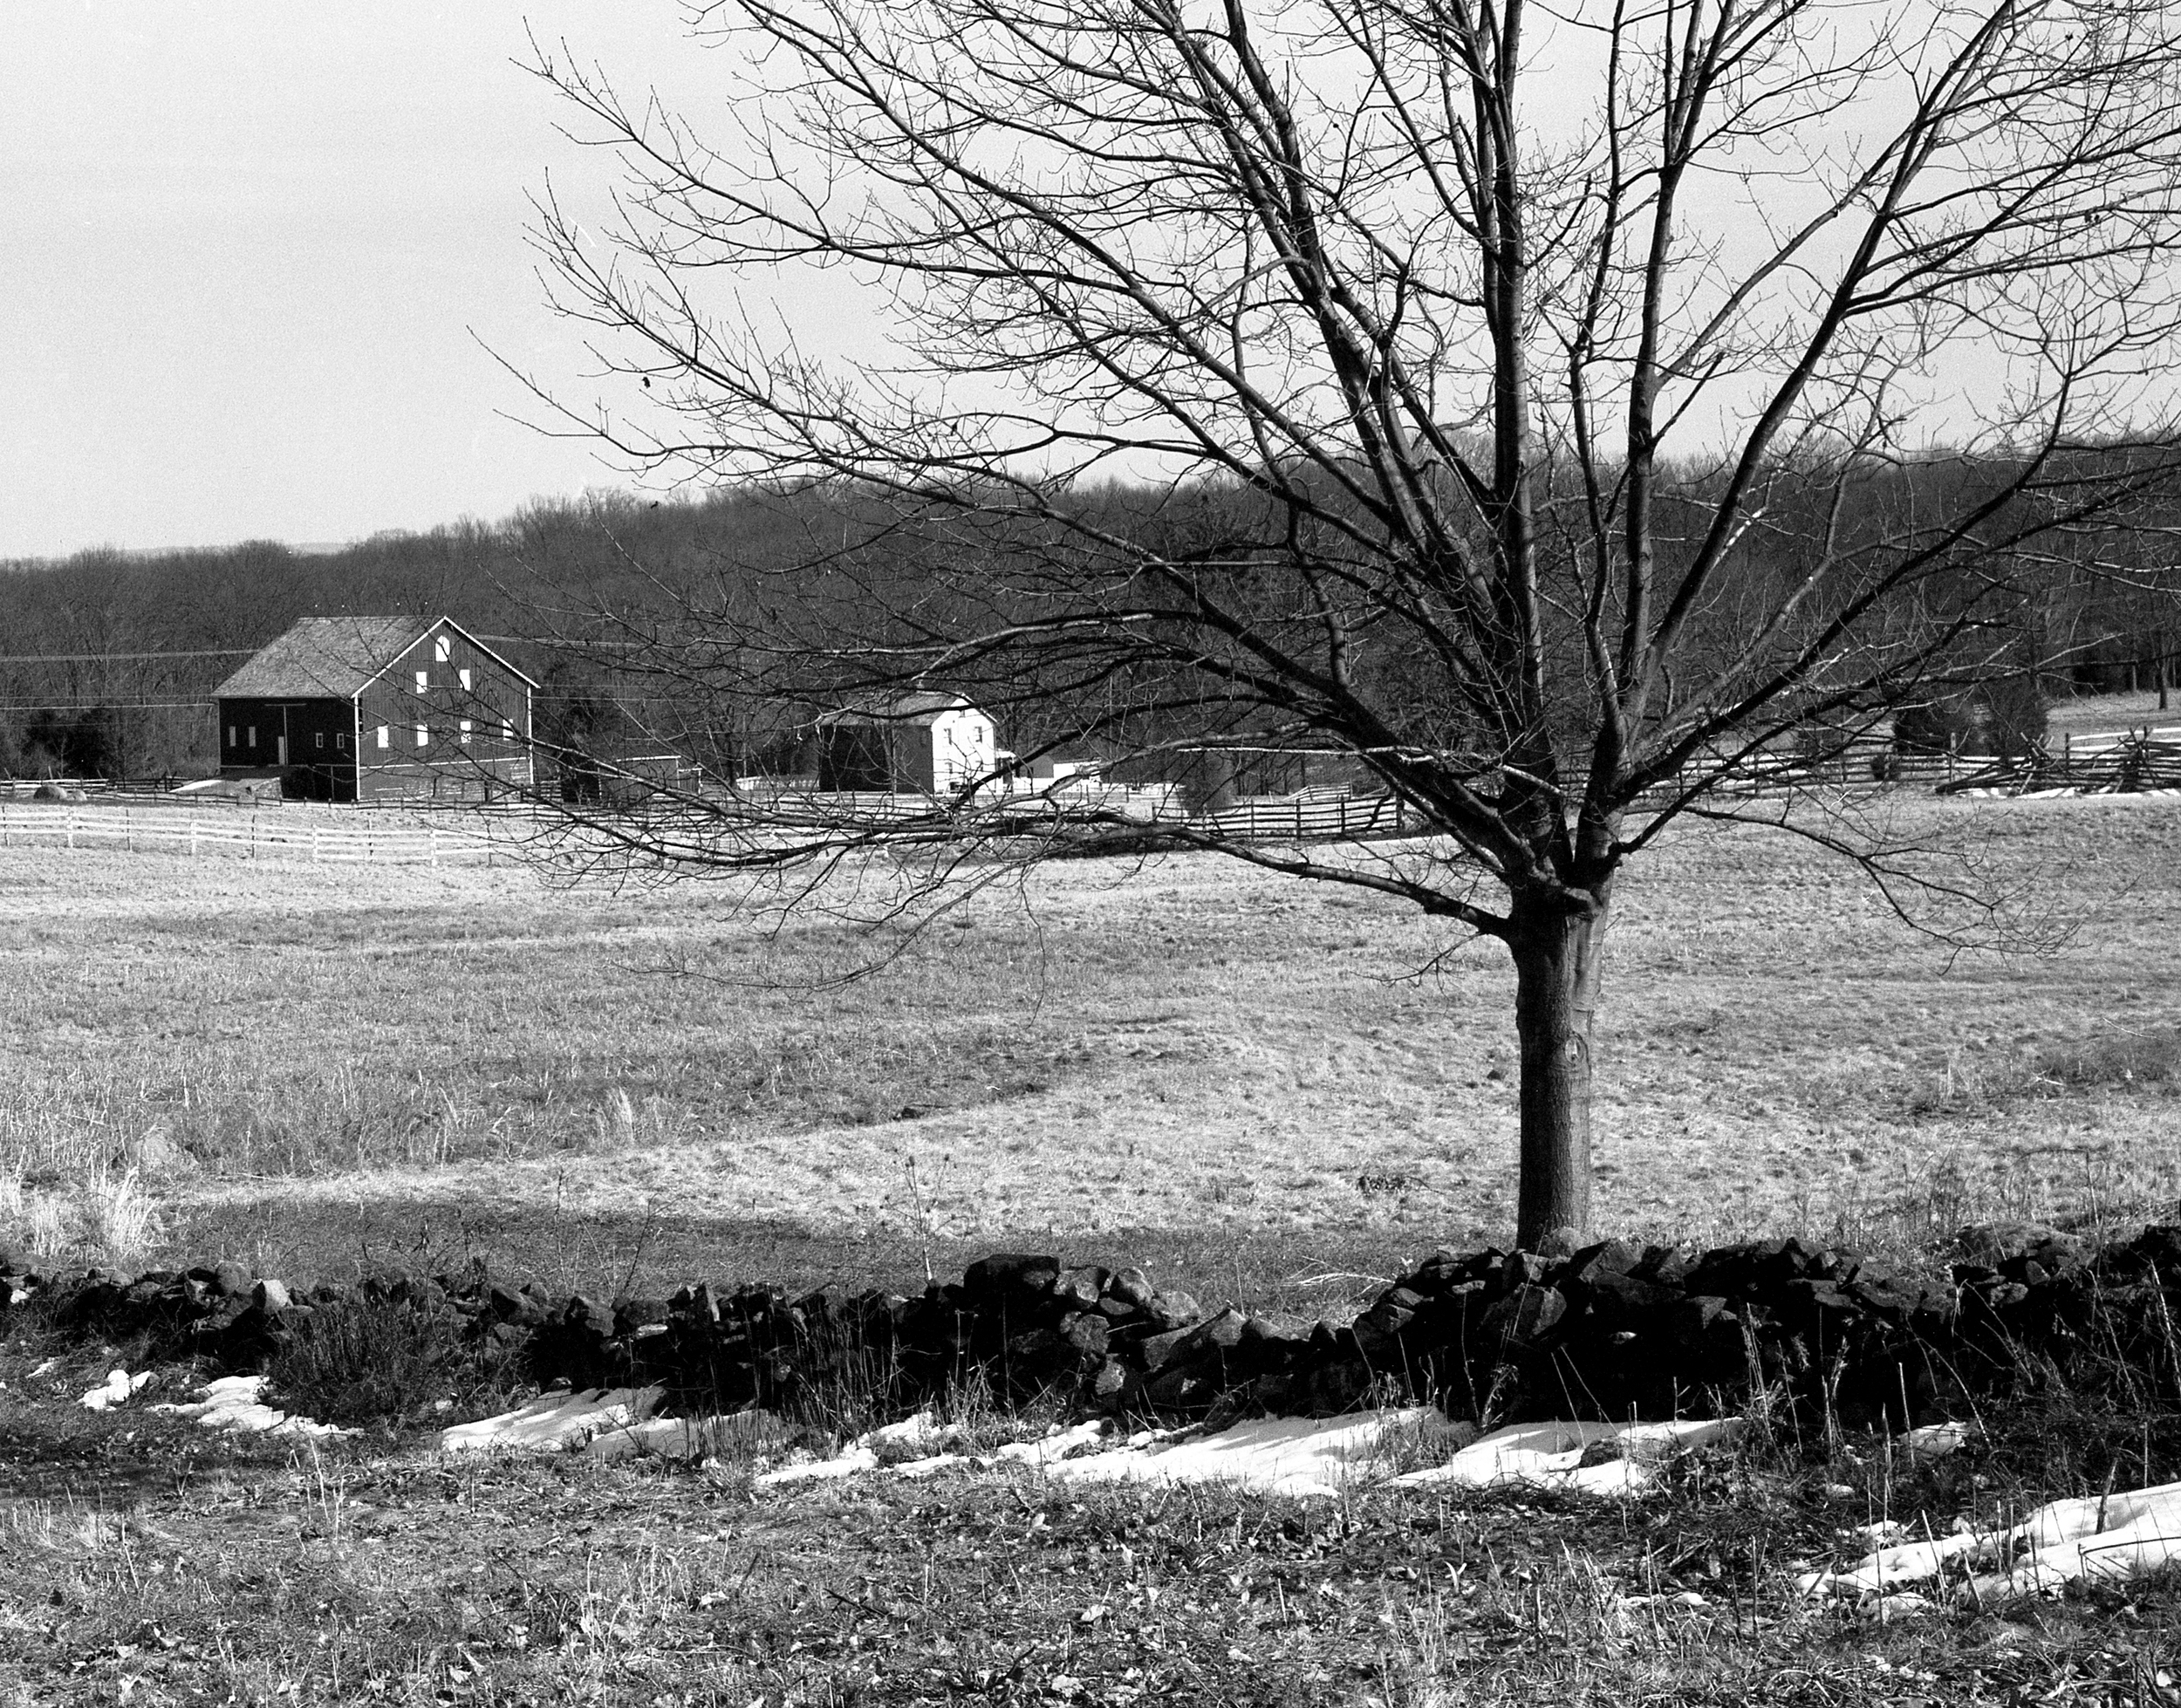 4x5_for_365_project_093_Gettysburg_barn_and_tree.jpg